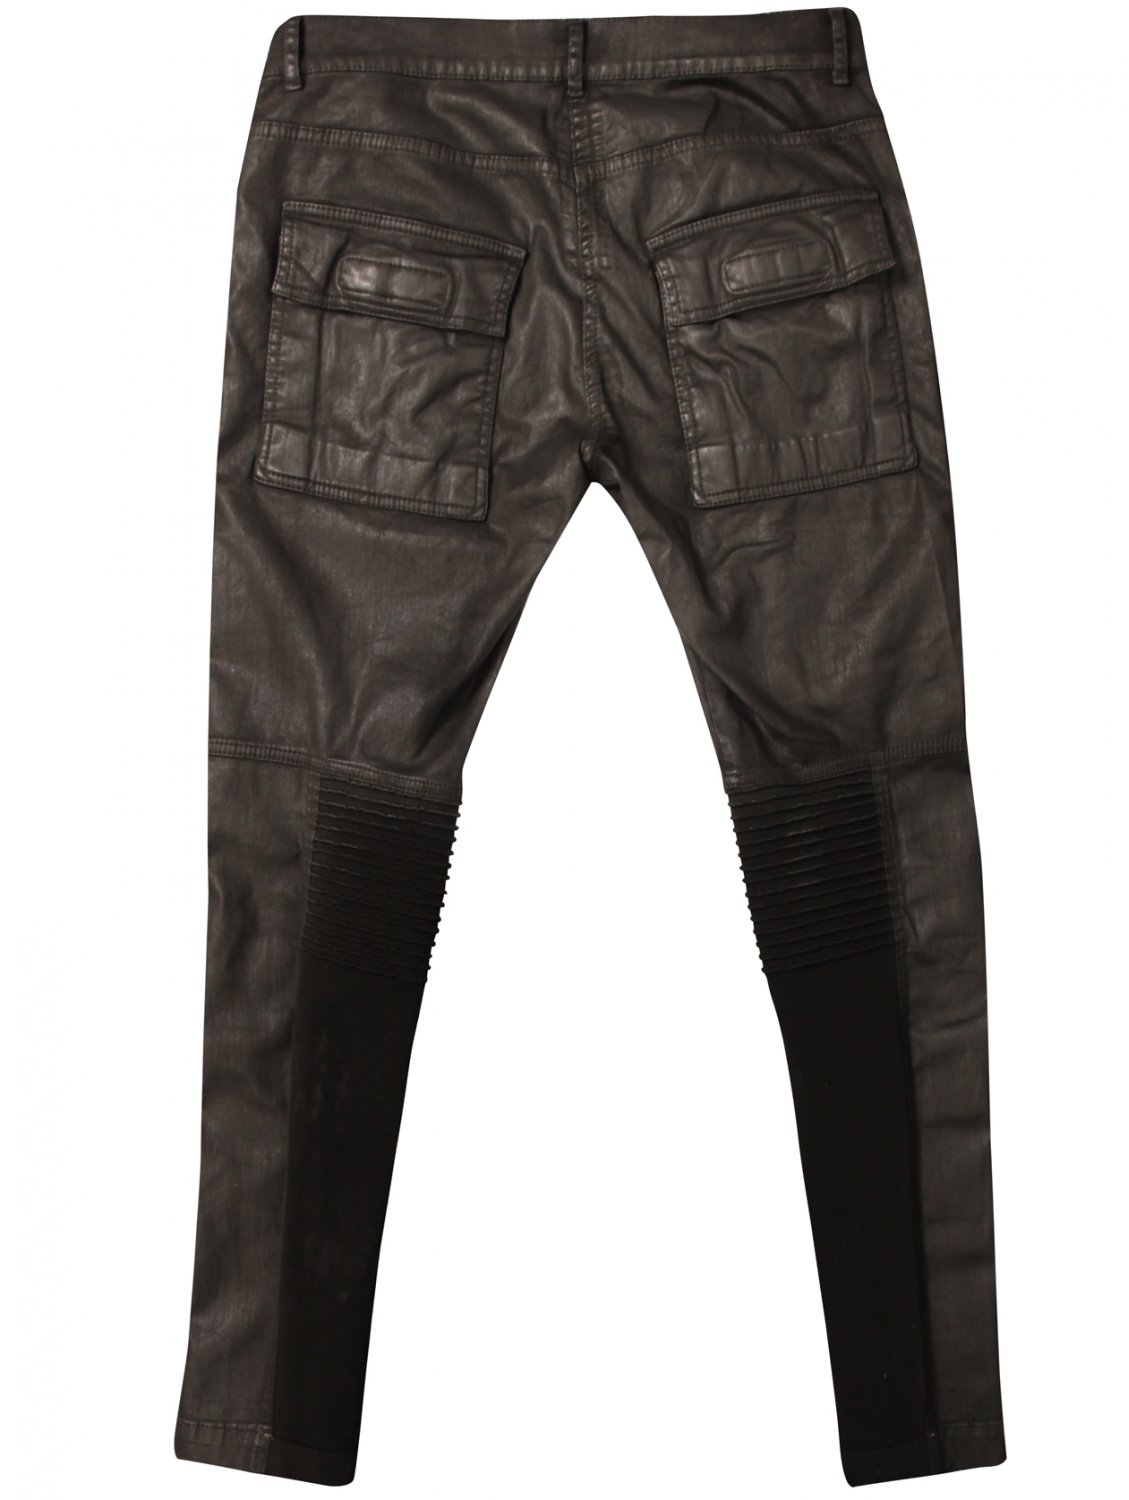 Find great deals on eBay for black waxed denim. Shop with confidence.